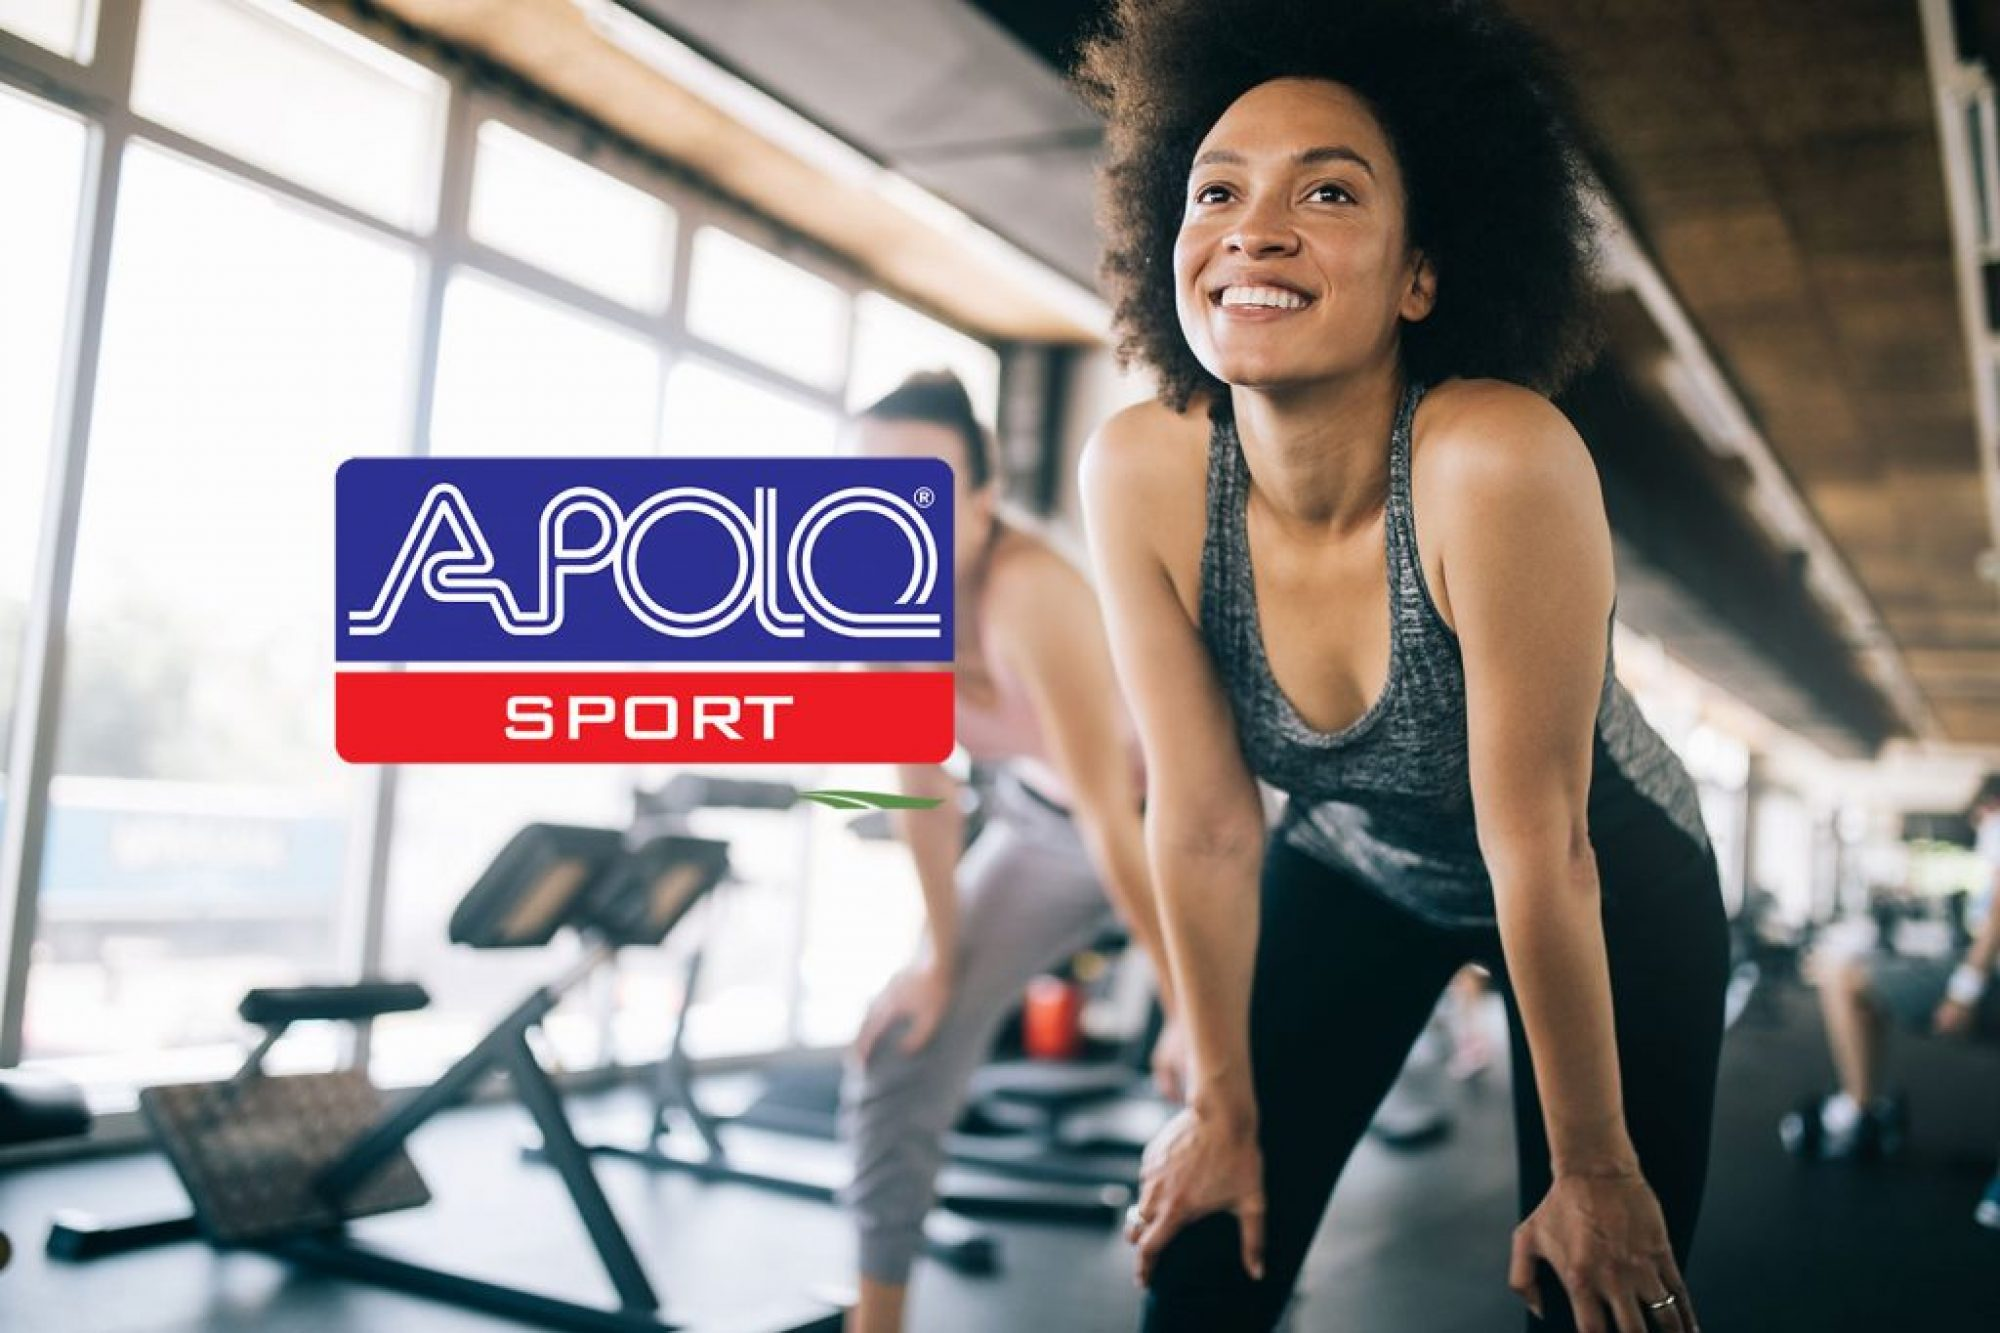 fit-sportswoman-exercising-and-training-at-WMJZXYD-apolo-sport